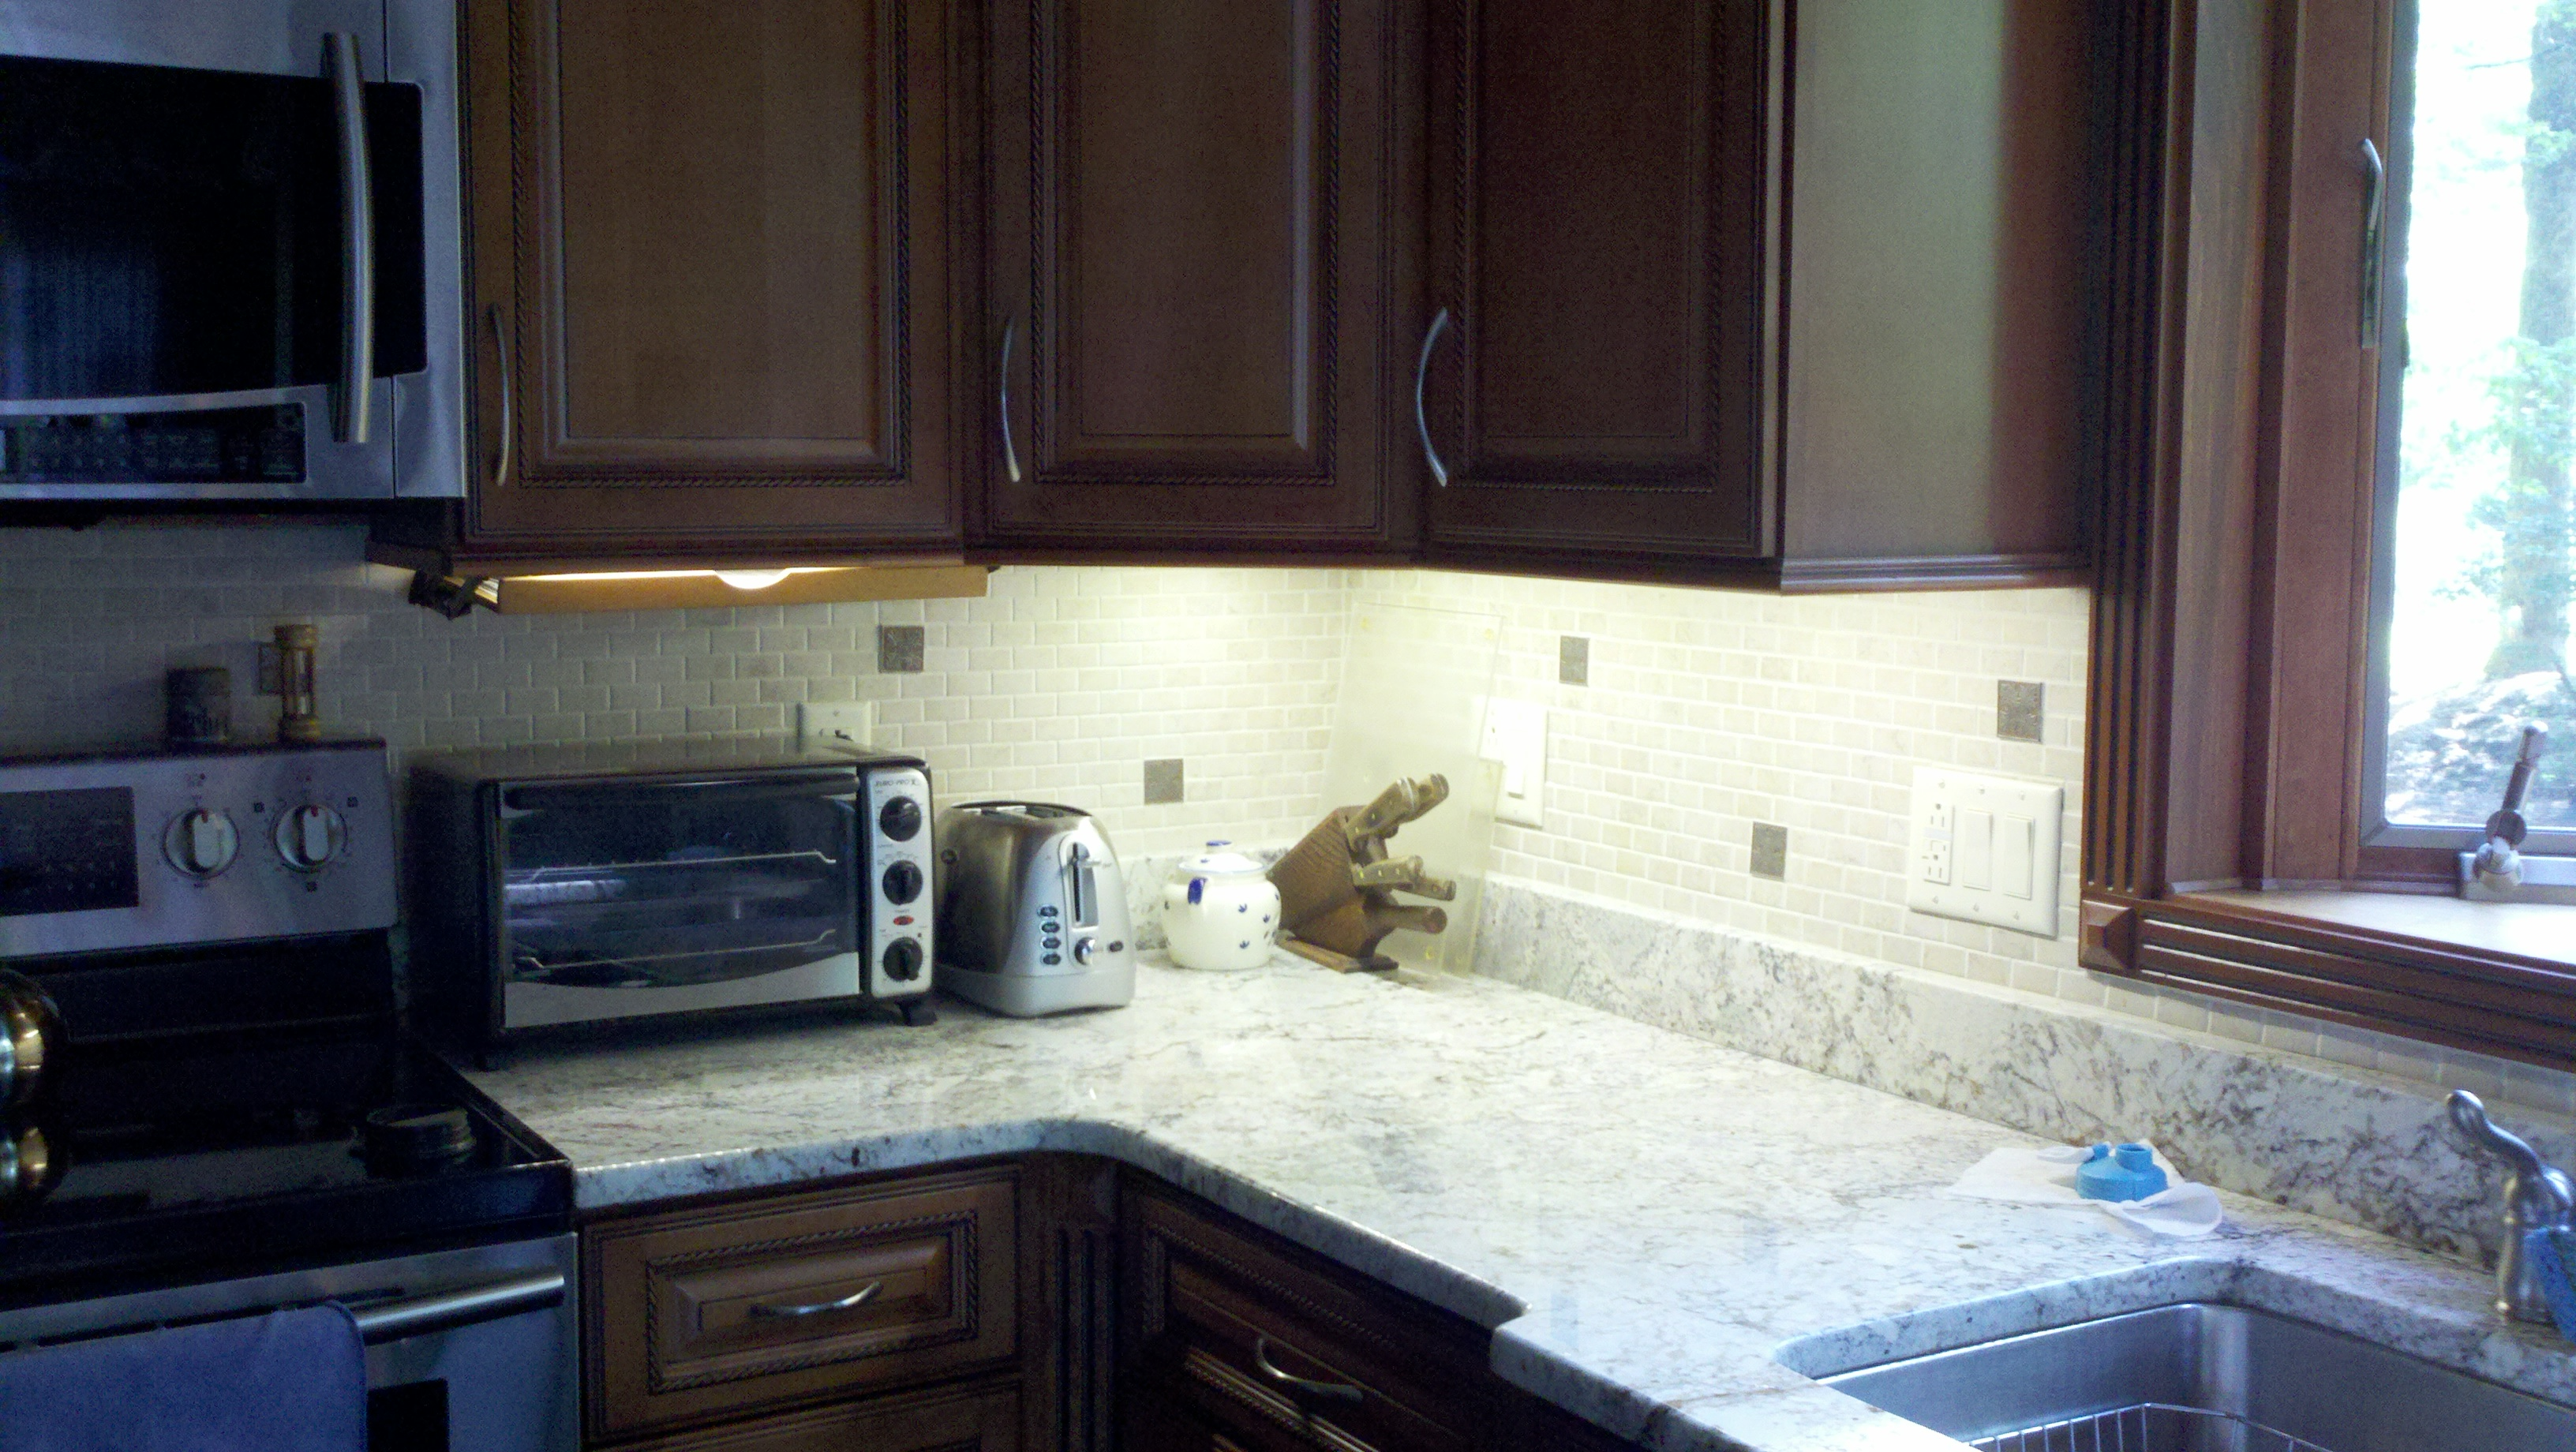 countertop lighting led. under cabinet kitchen led lights look great learn howto make them countertop lighting led n